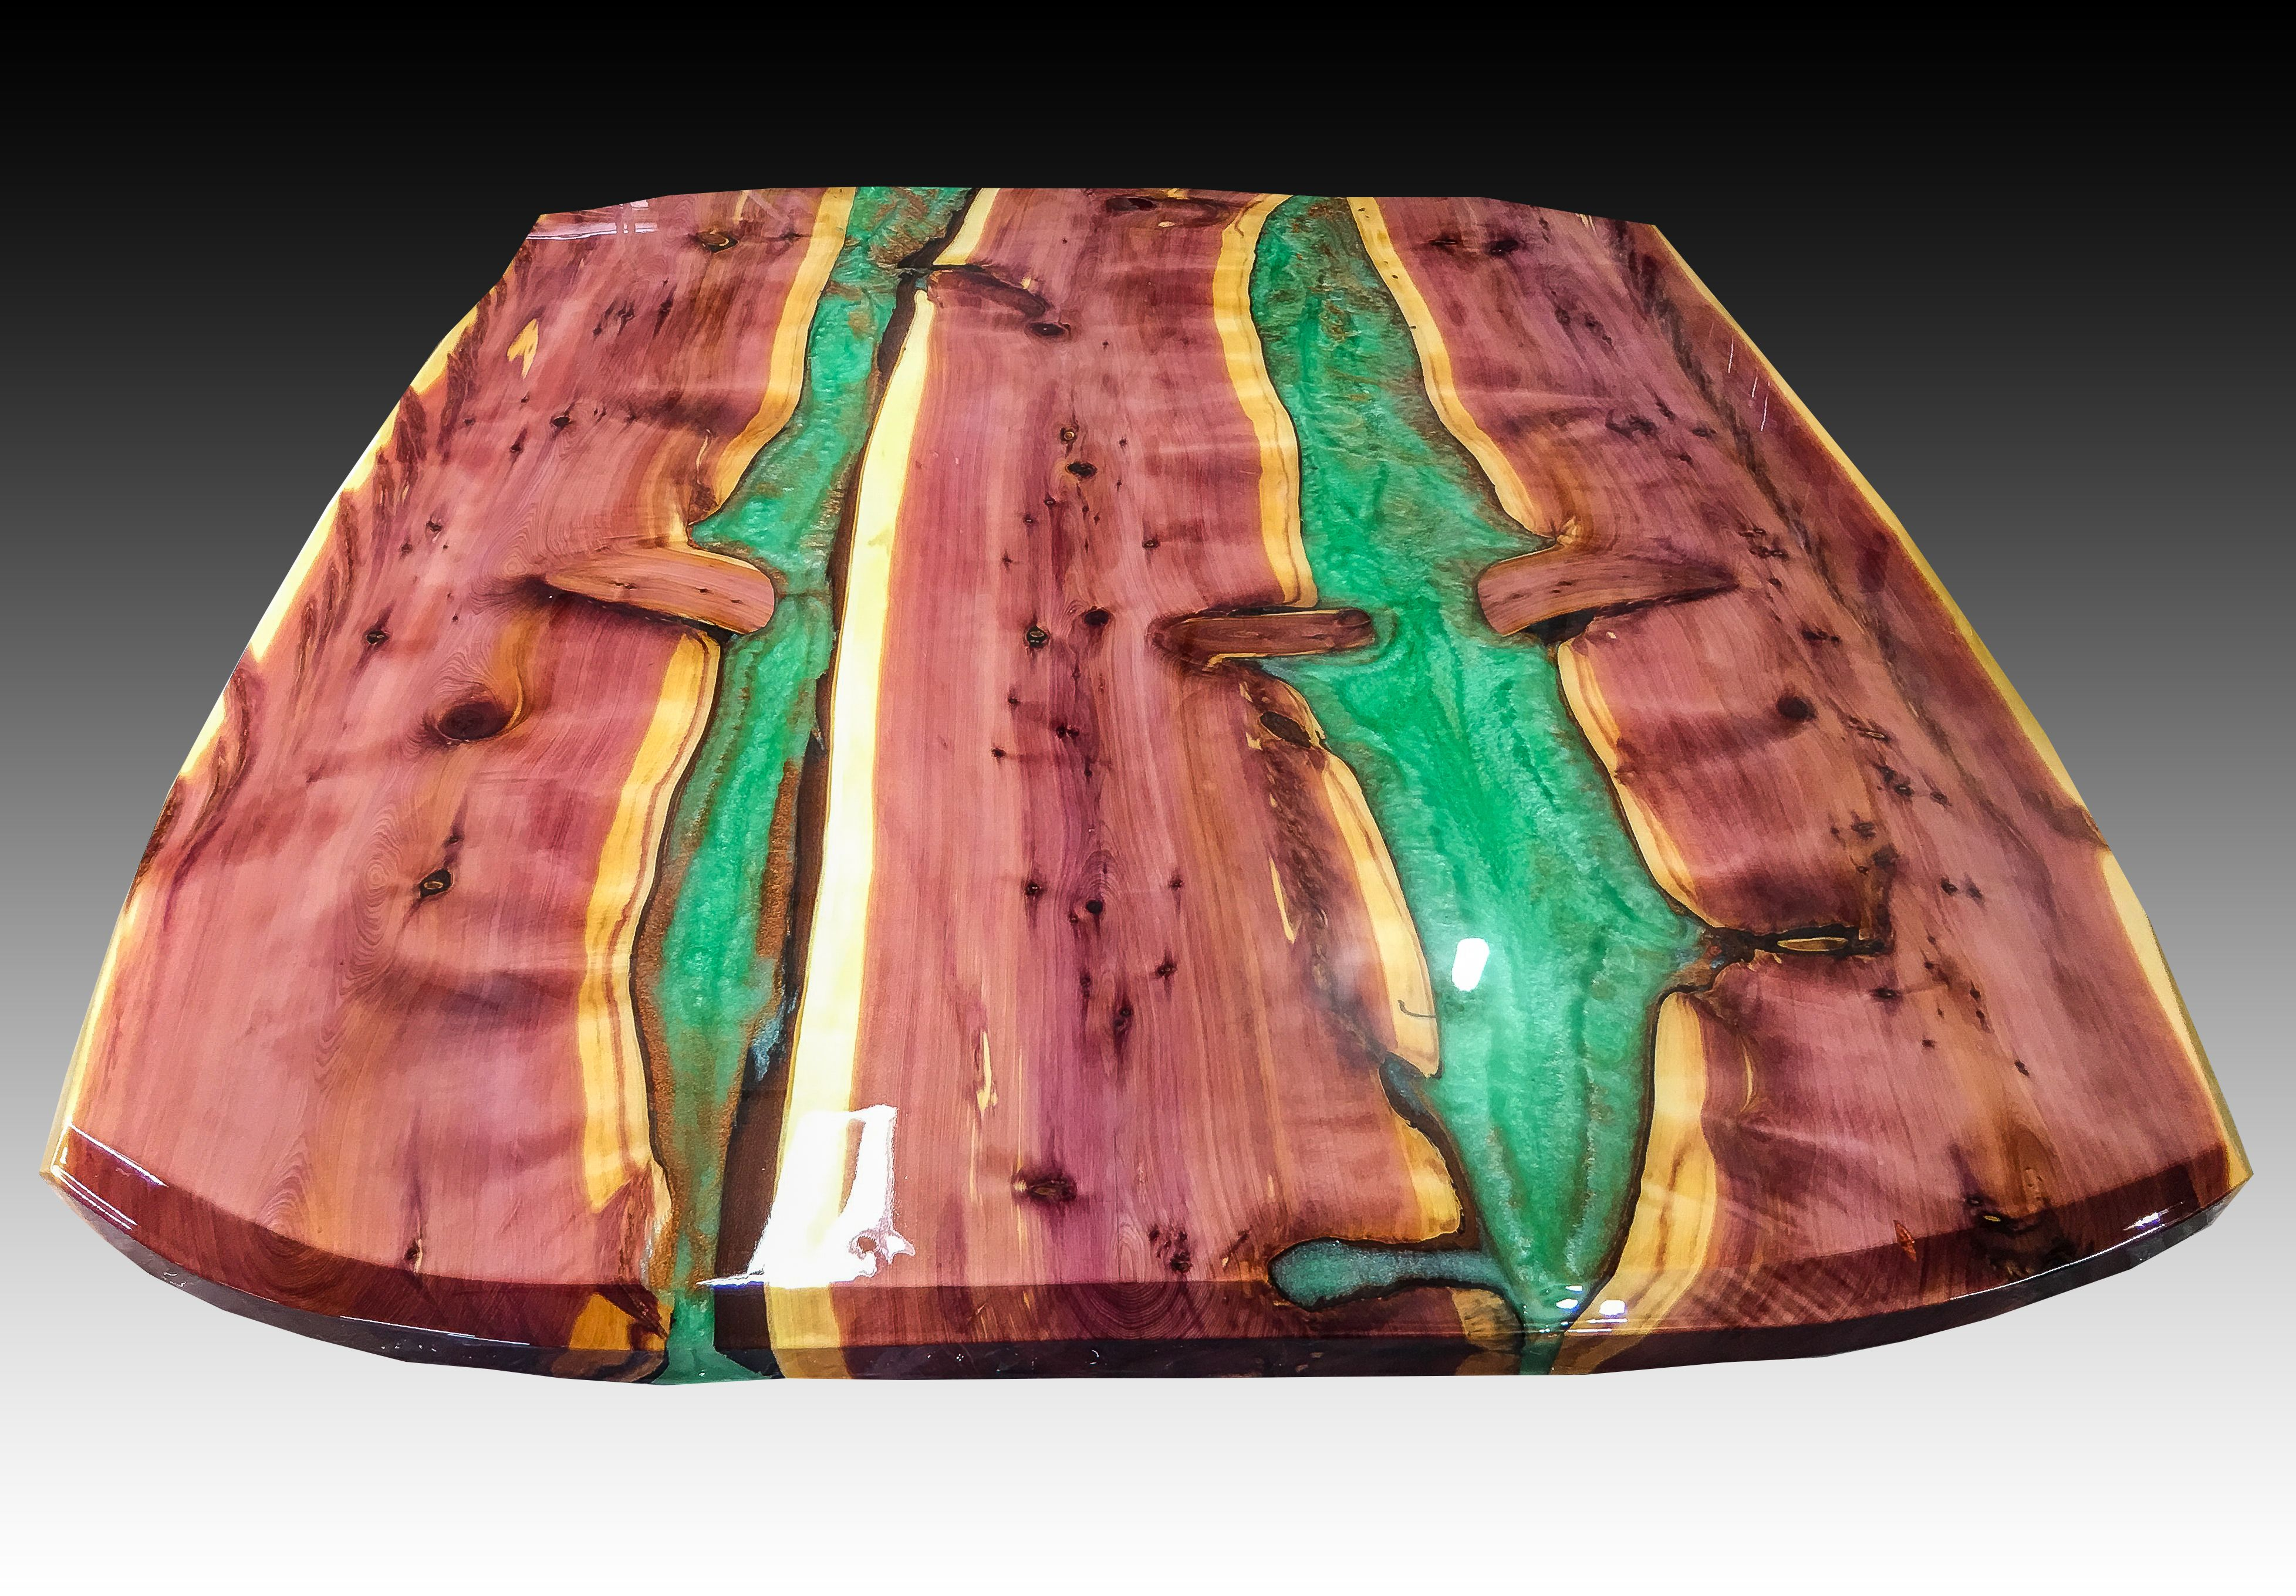 Hand Crafted River Dining Table By Crookedwood Custommade Com